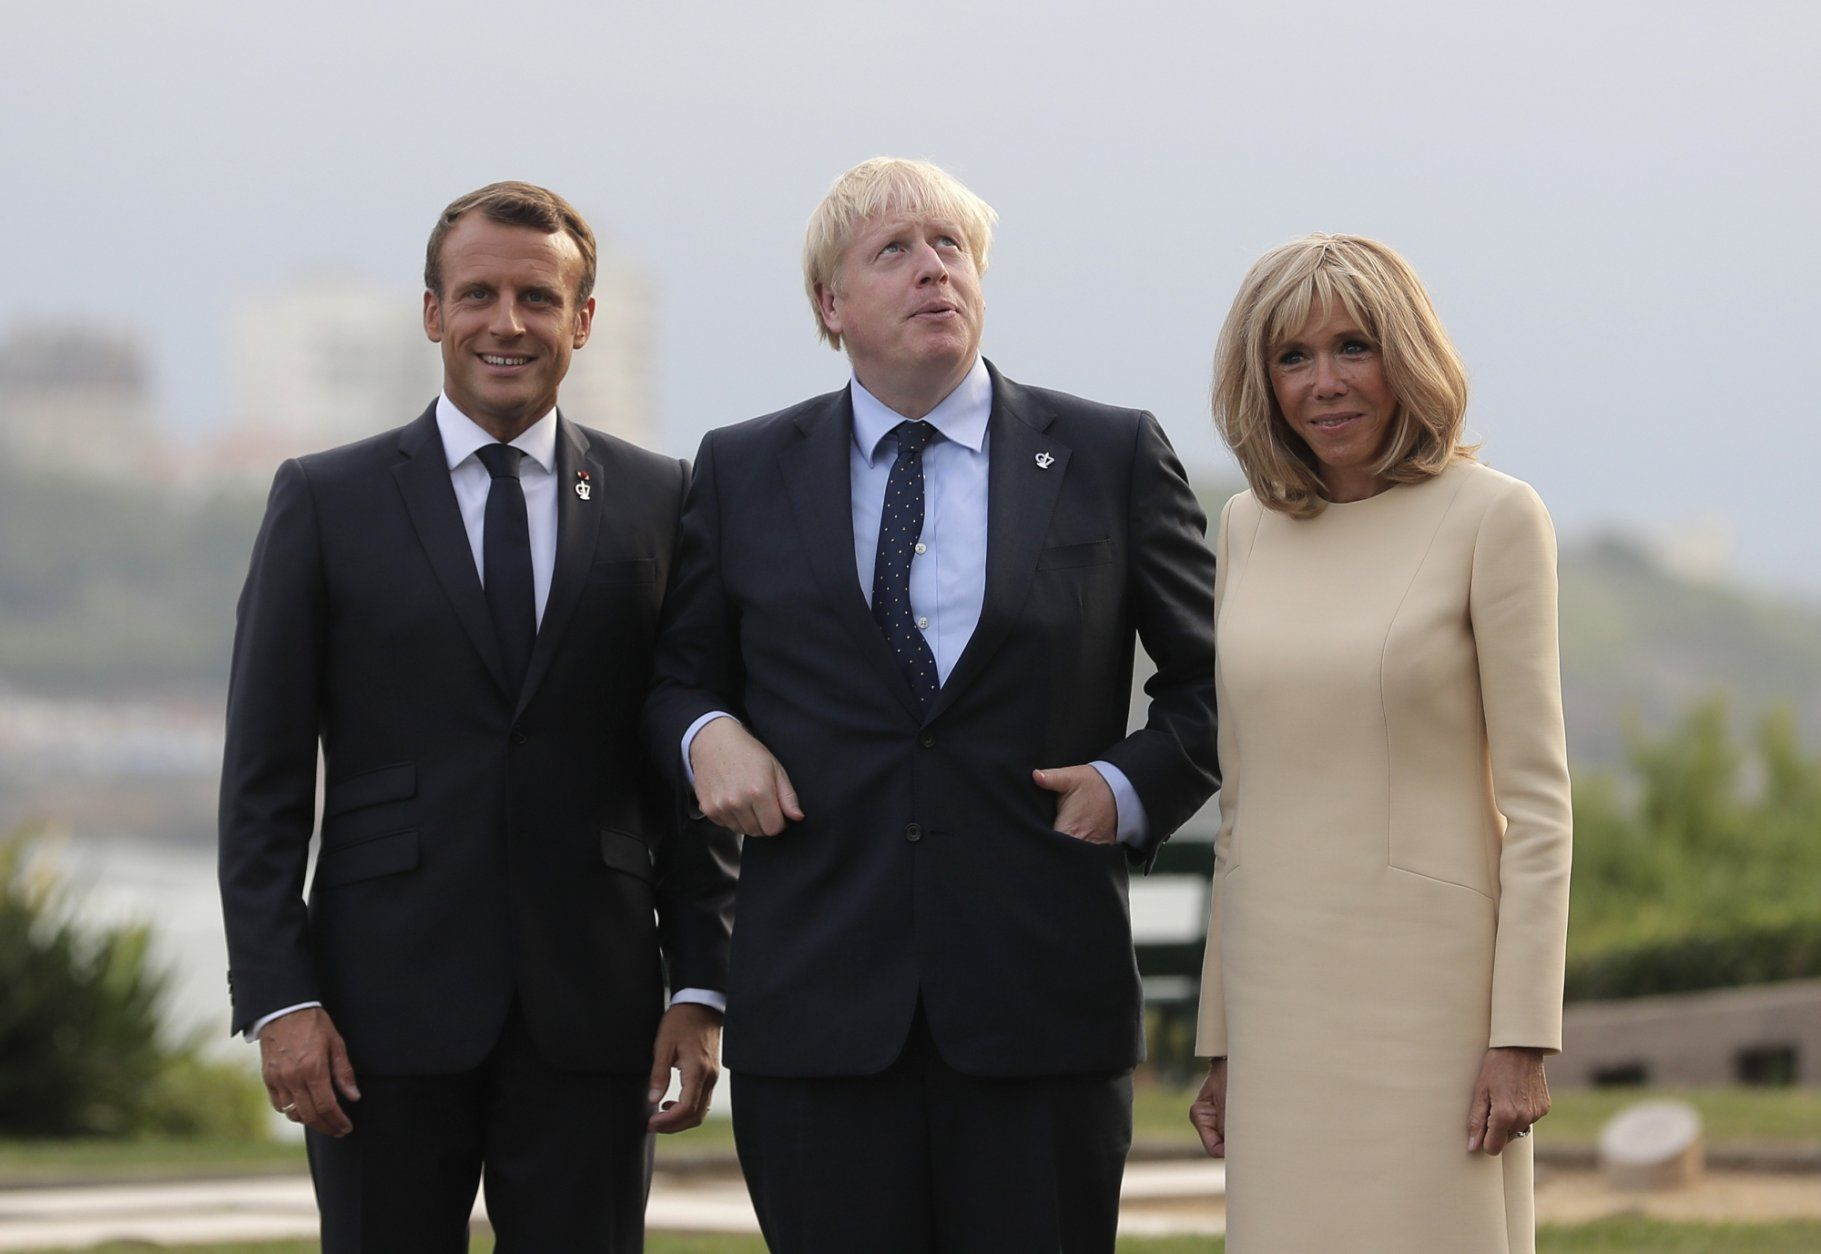 French President Emmanuel Macron and his wife Brigitte welcome Britain's Prime Minister Boris Johnson at the Biarritz lighthouse, southwestern France, ahead of a working dinner Saturday, Aug.24, 2019. Shadowed by the threat of global recession, a U.S. trade war with China and the possibility of one against Europe, the posturing by leaders of the G-7 rich democracies began well before they stood together for a summit photo. (AP Photo/Markus Schreiber)